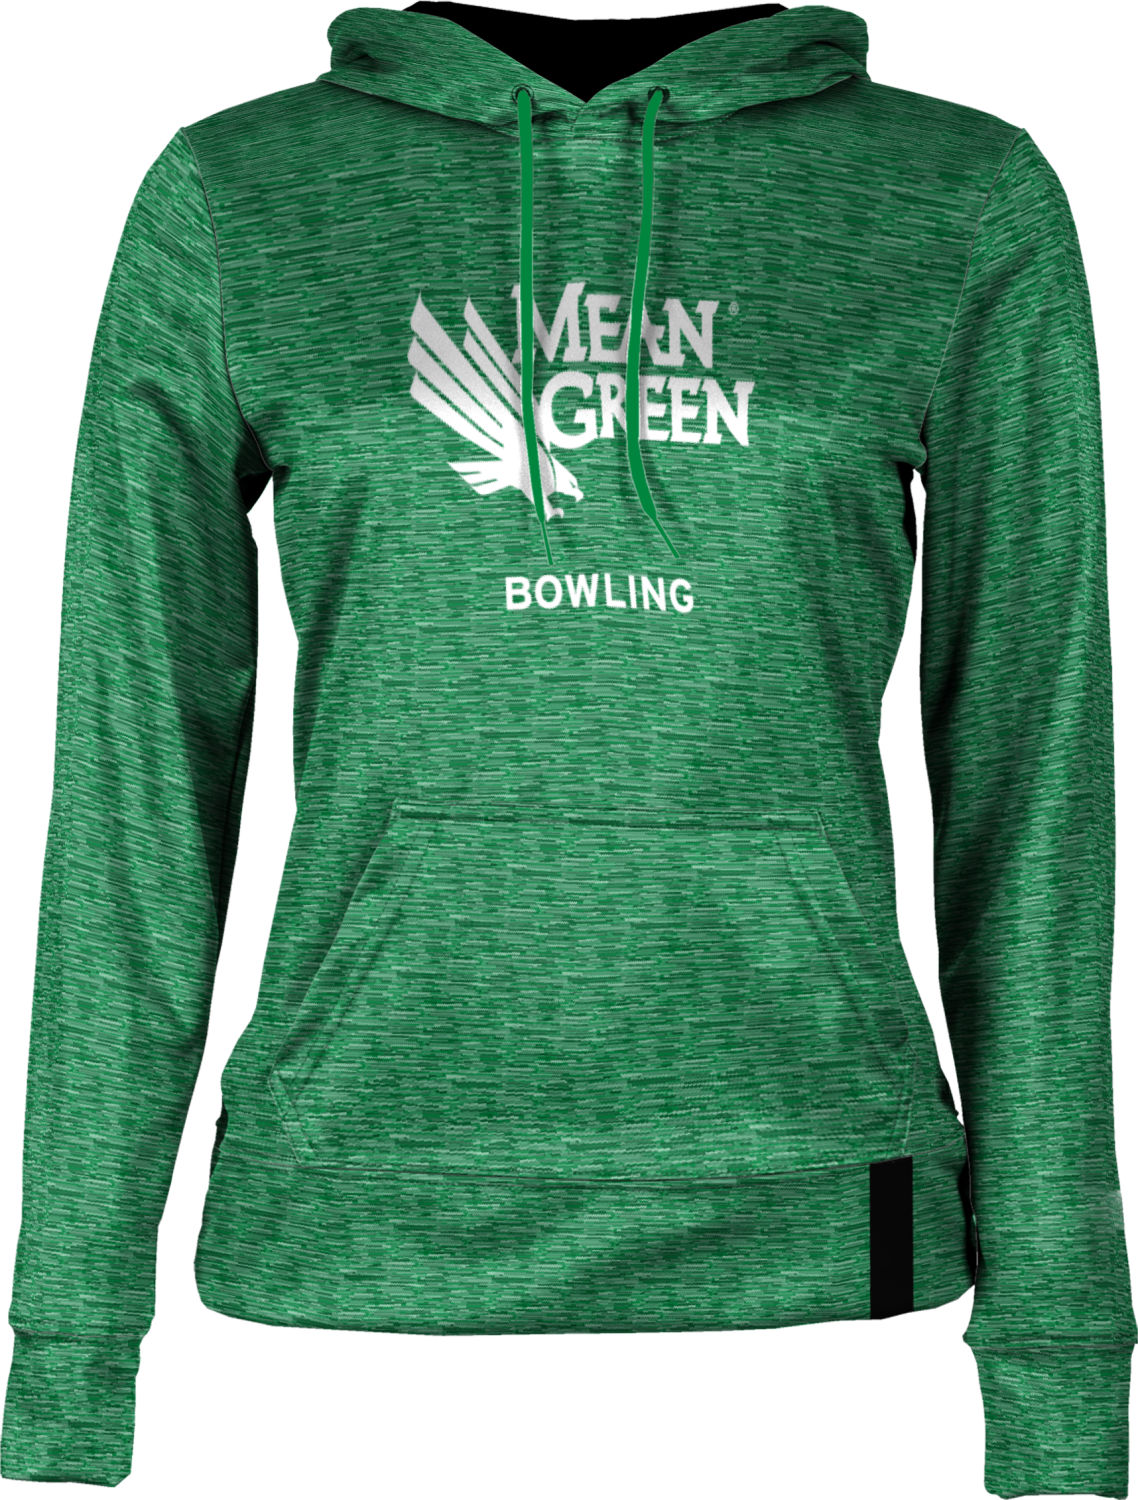 Girl's ProSphere Sublimated Hoodie - Bowling